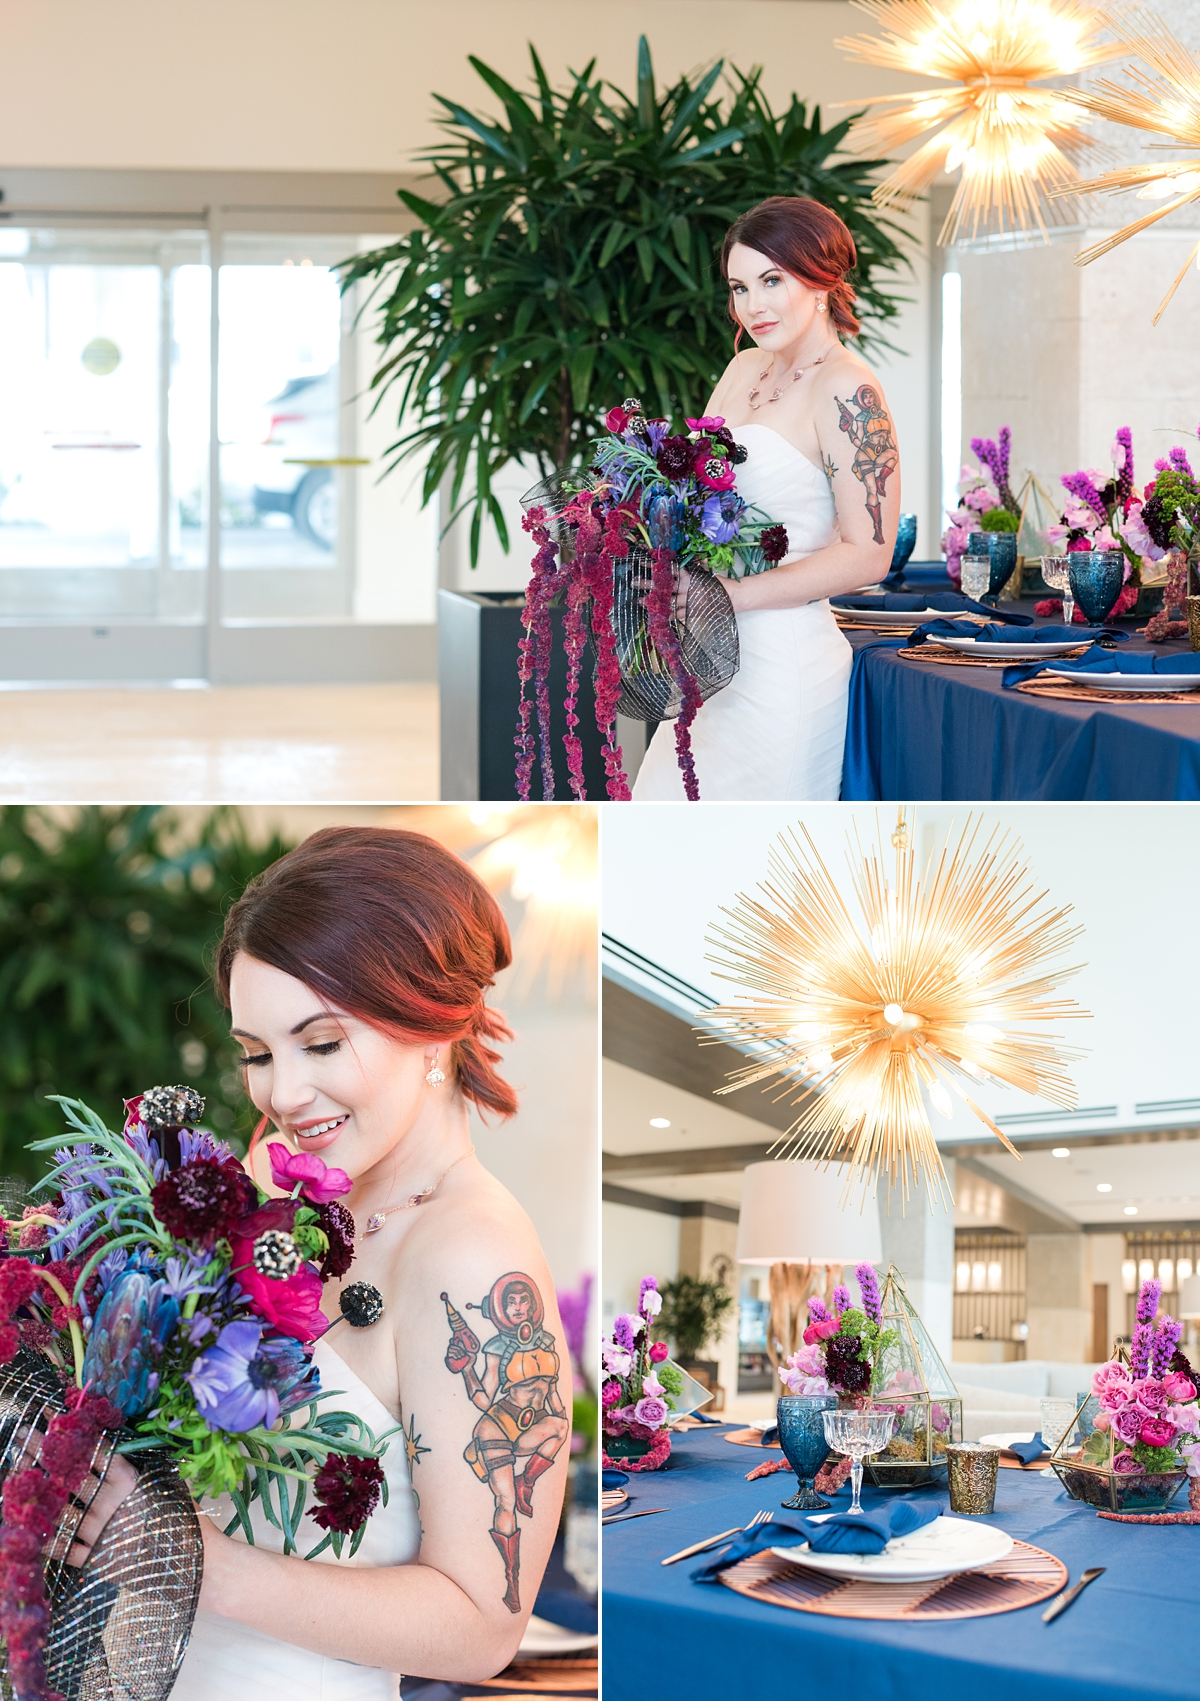 Embassy Suites St Augustine-Styled Wedding Fashion-Wedding Tables-Wedding Decor Inspiration-Short Hairstyle-Bridal Bouquet.jpg